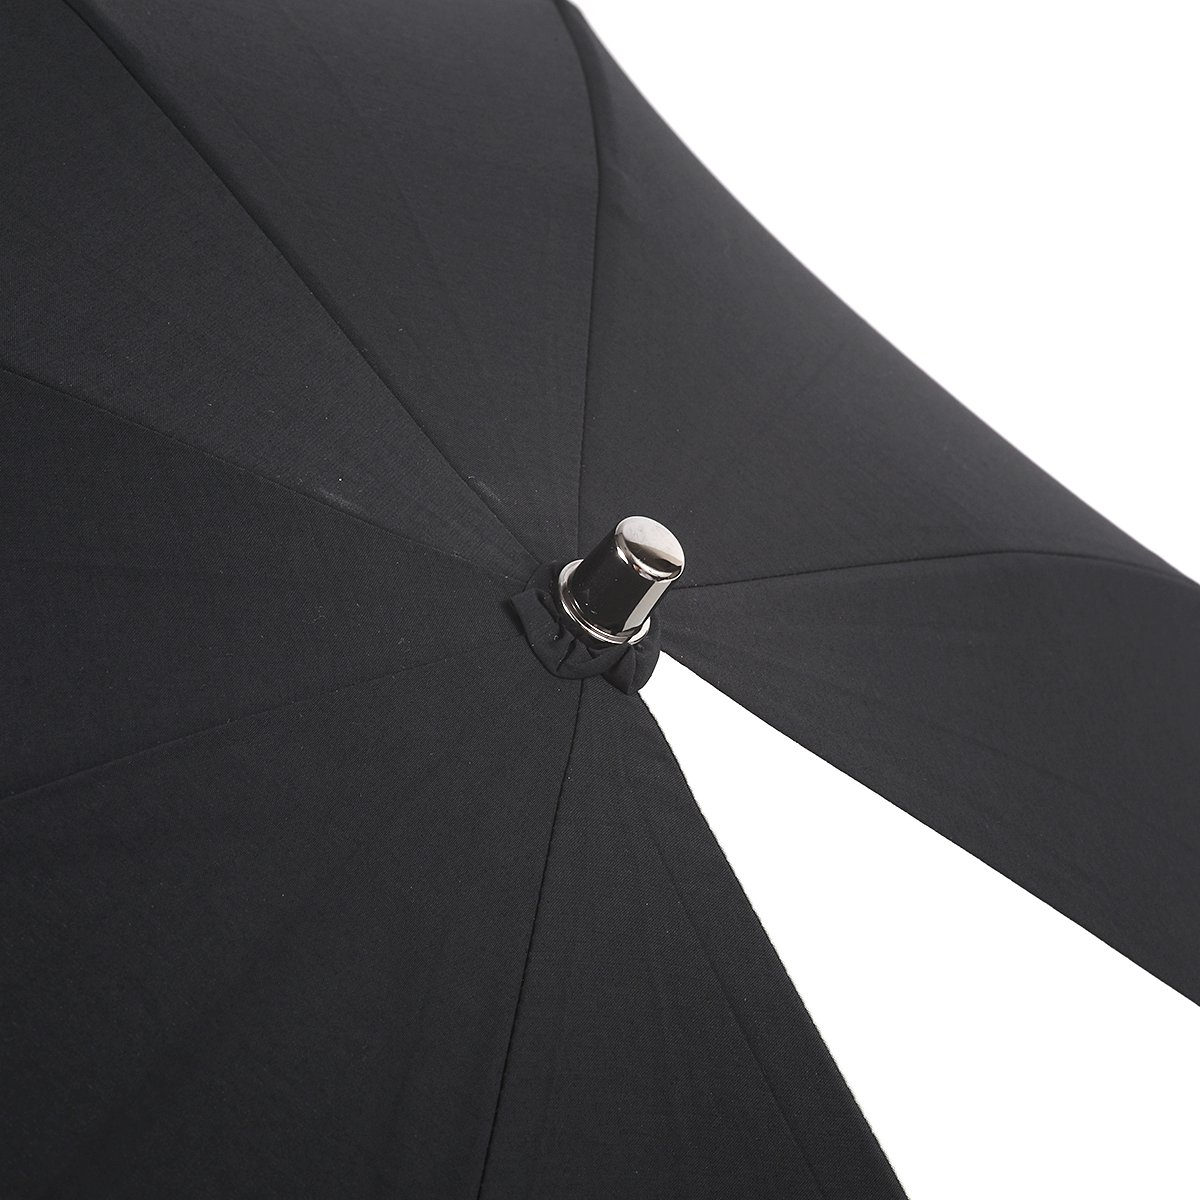 608K CORDURA FOLDING UMBRELLA 詳細画像5